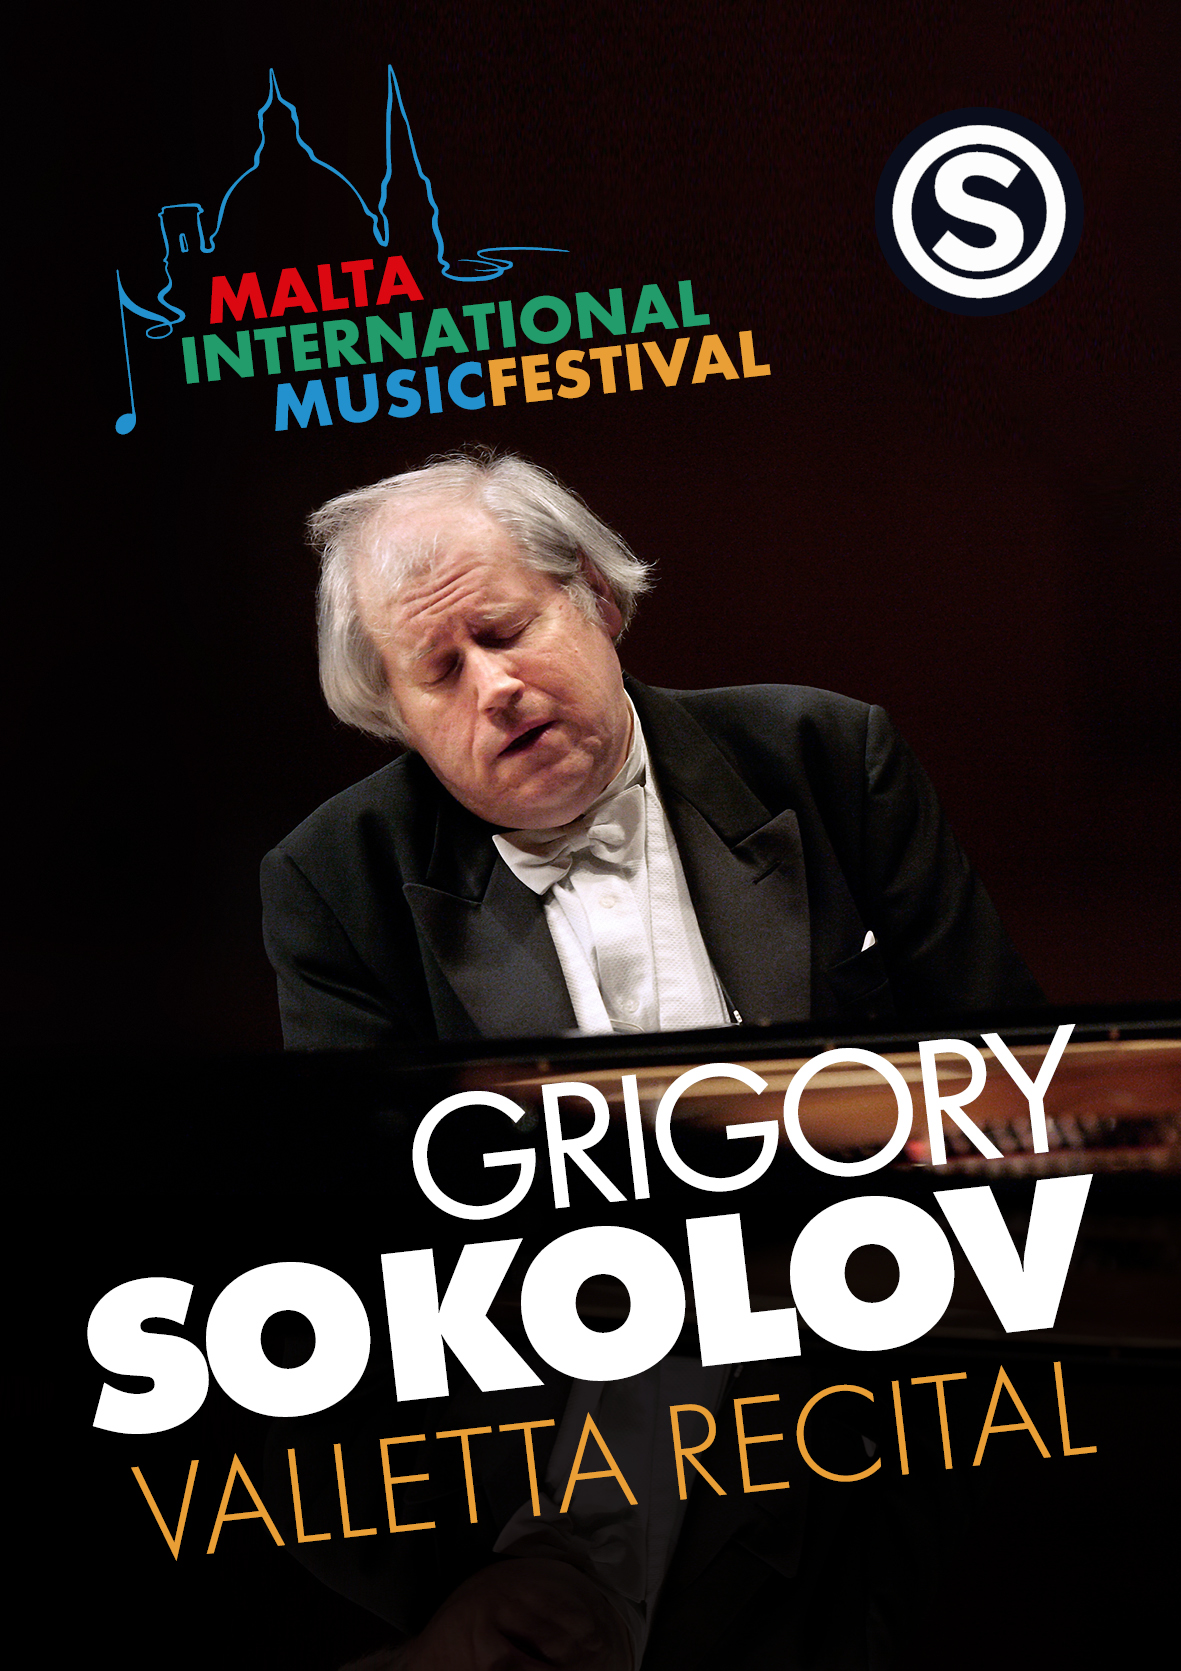 The Legend Back in Malta -Grigory Sokolov